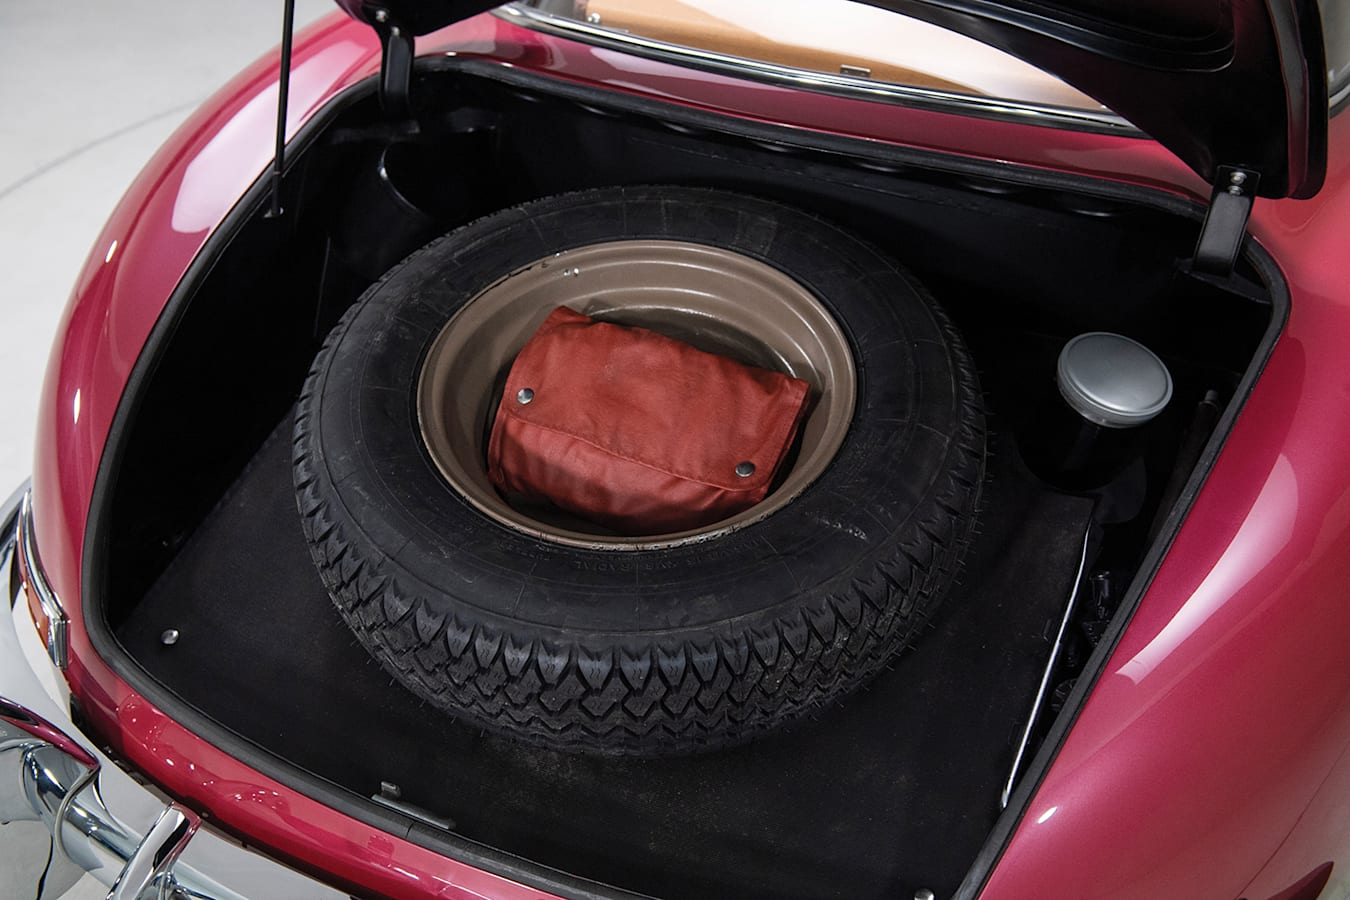 1954 Mercedes-Benz 300 SL boot and spare tyre